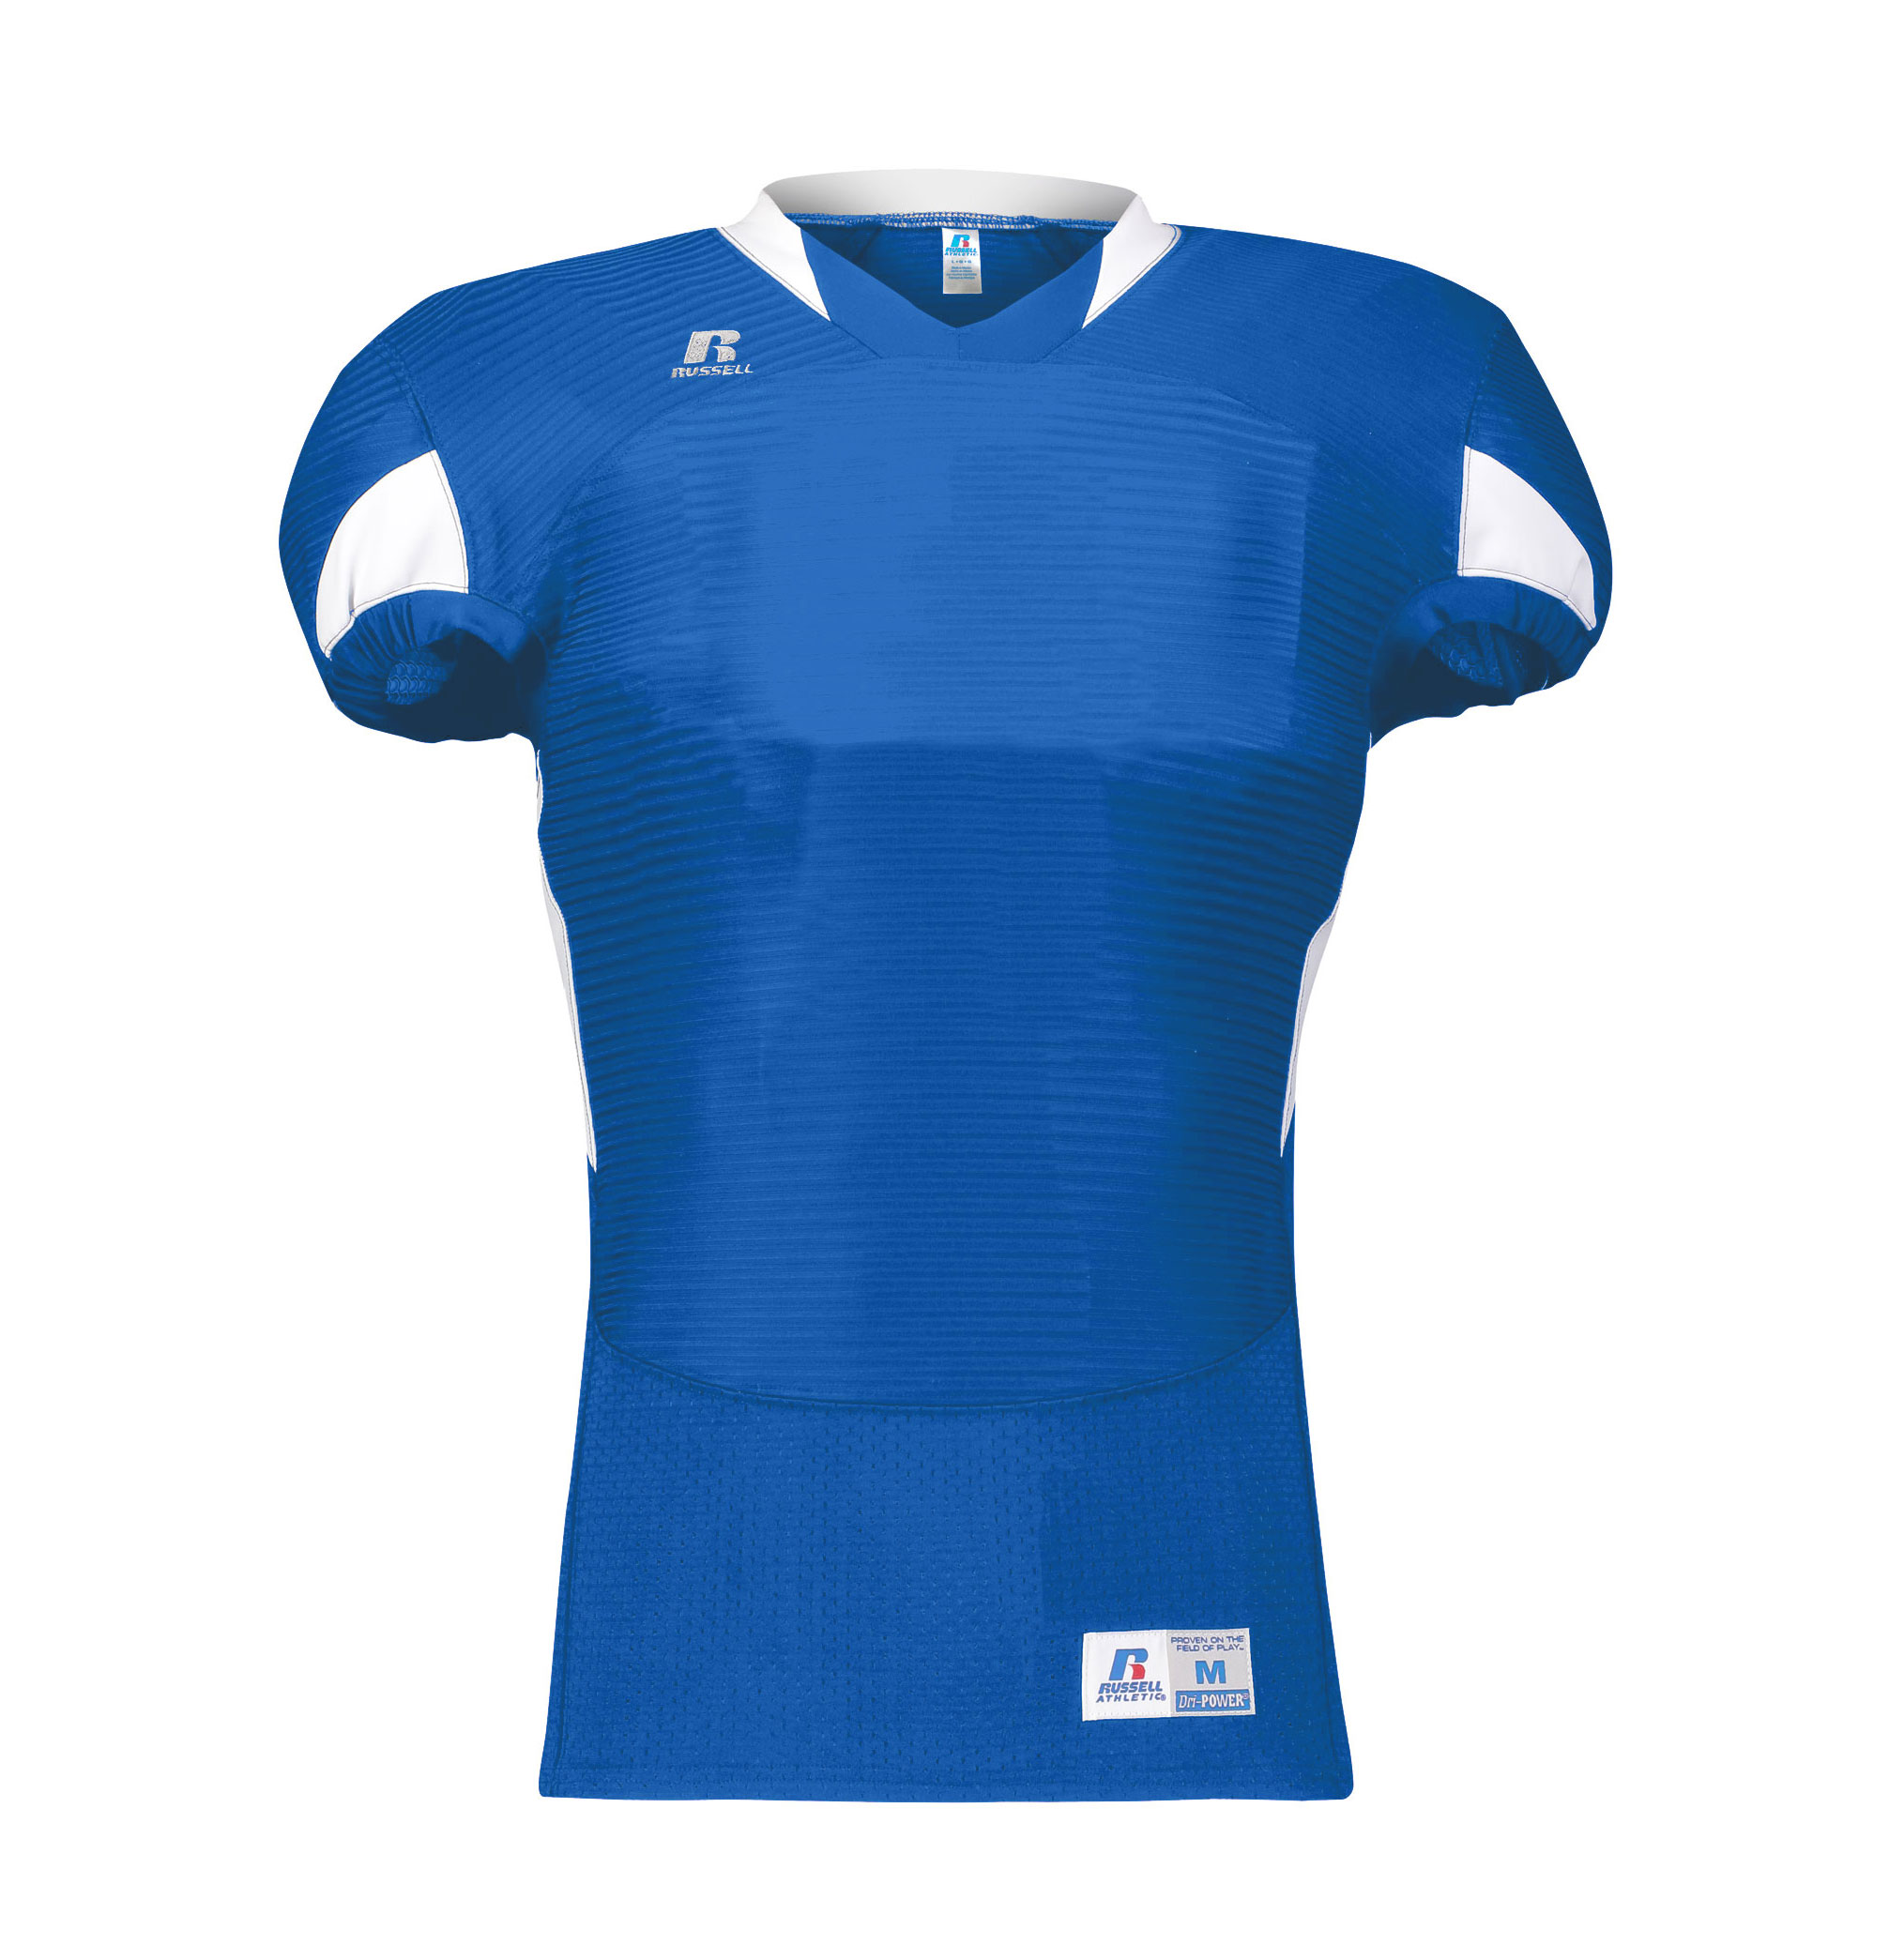 Russell Adult Waist Length Football Jersey